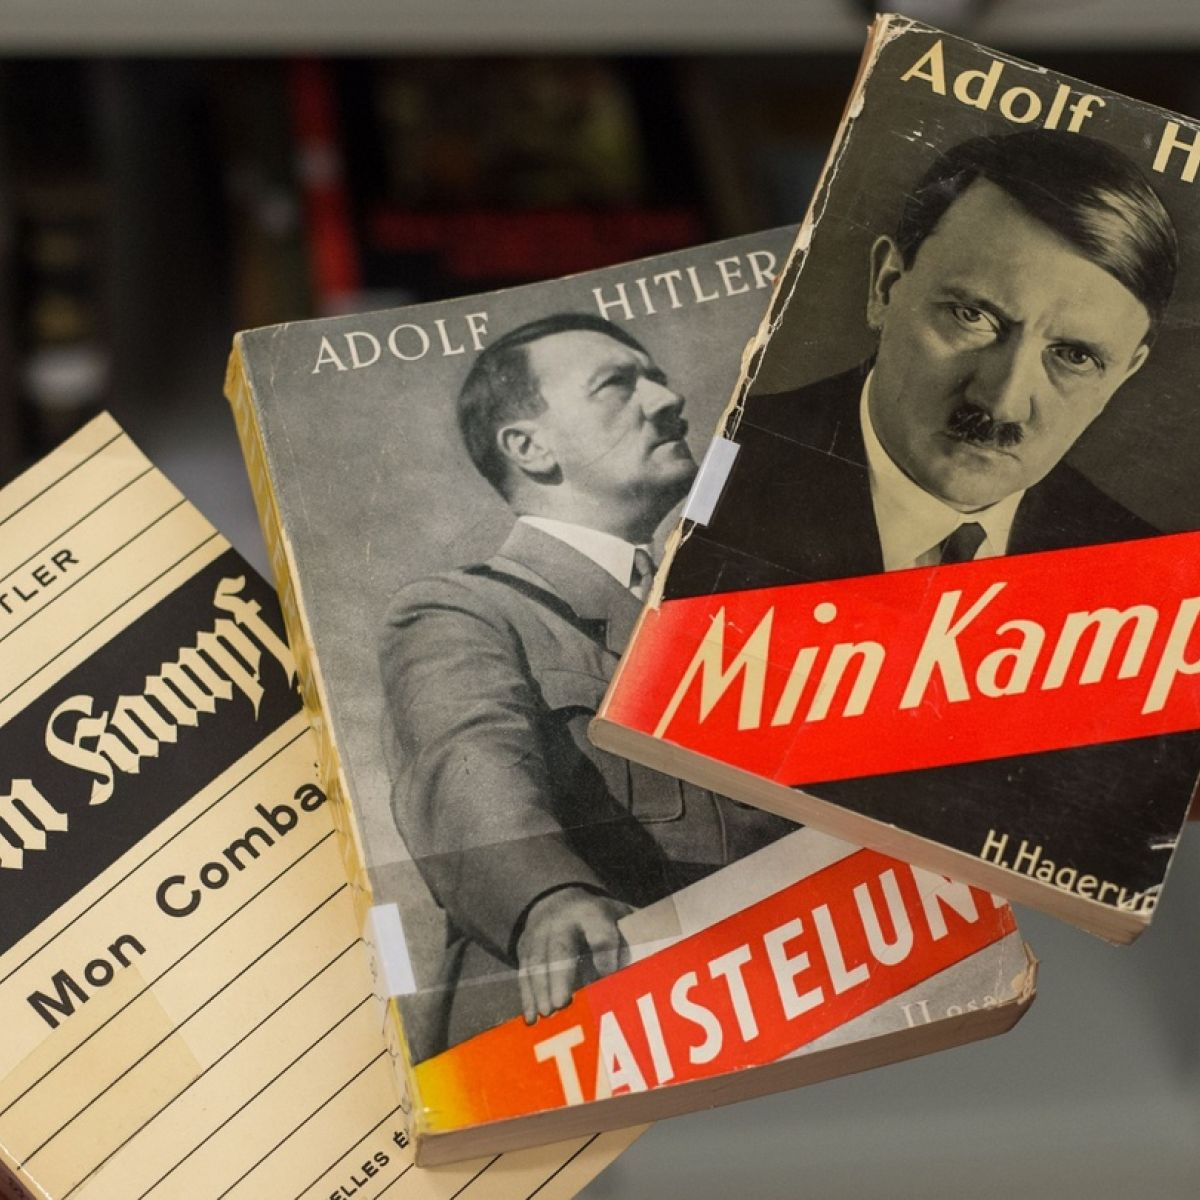 The return of Mein Kampf to Hitler 83